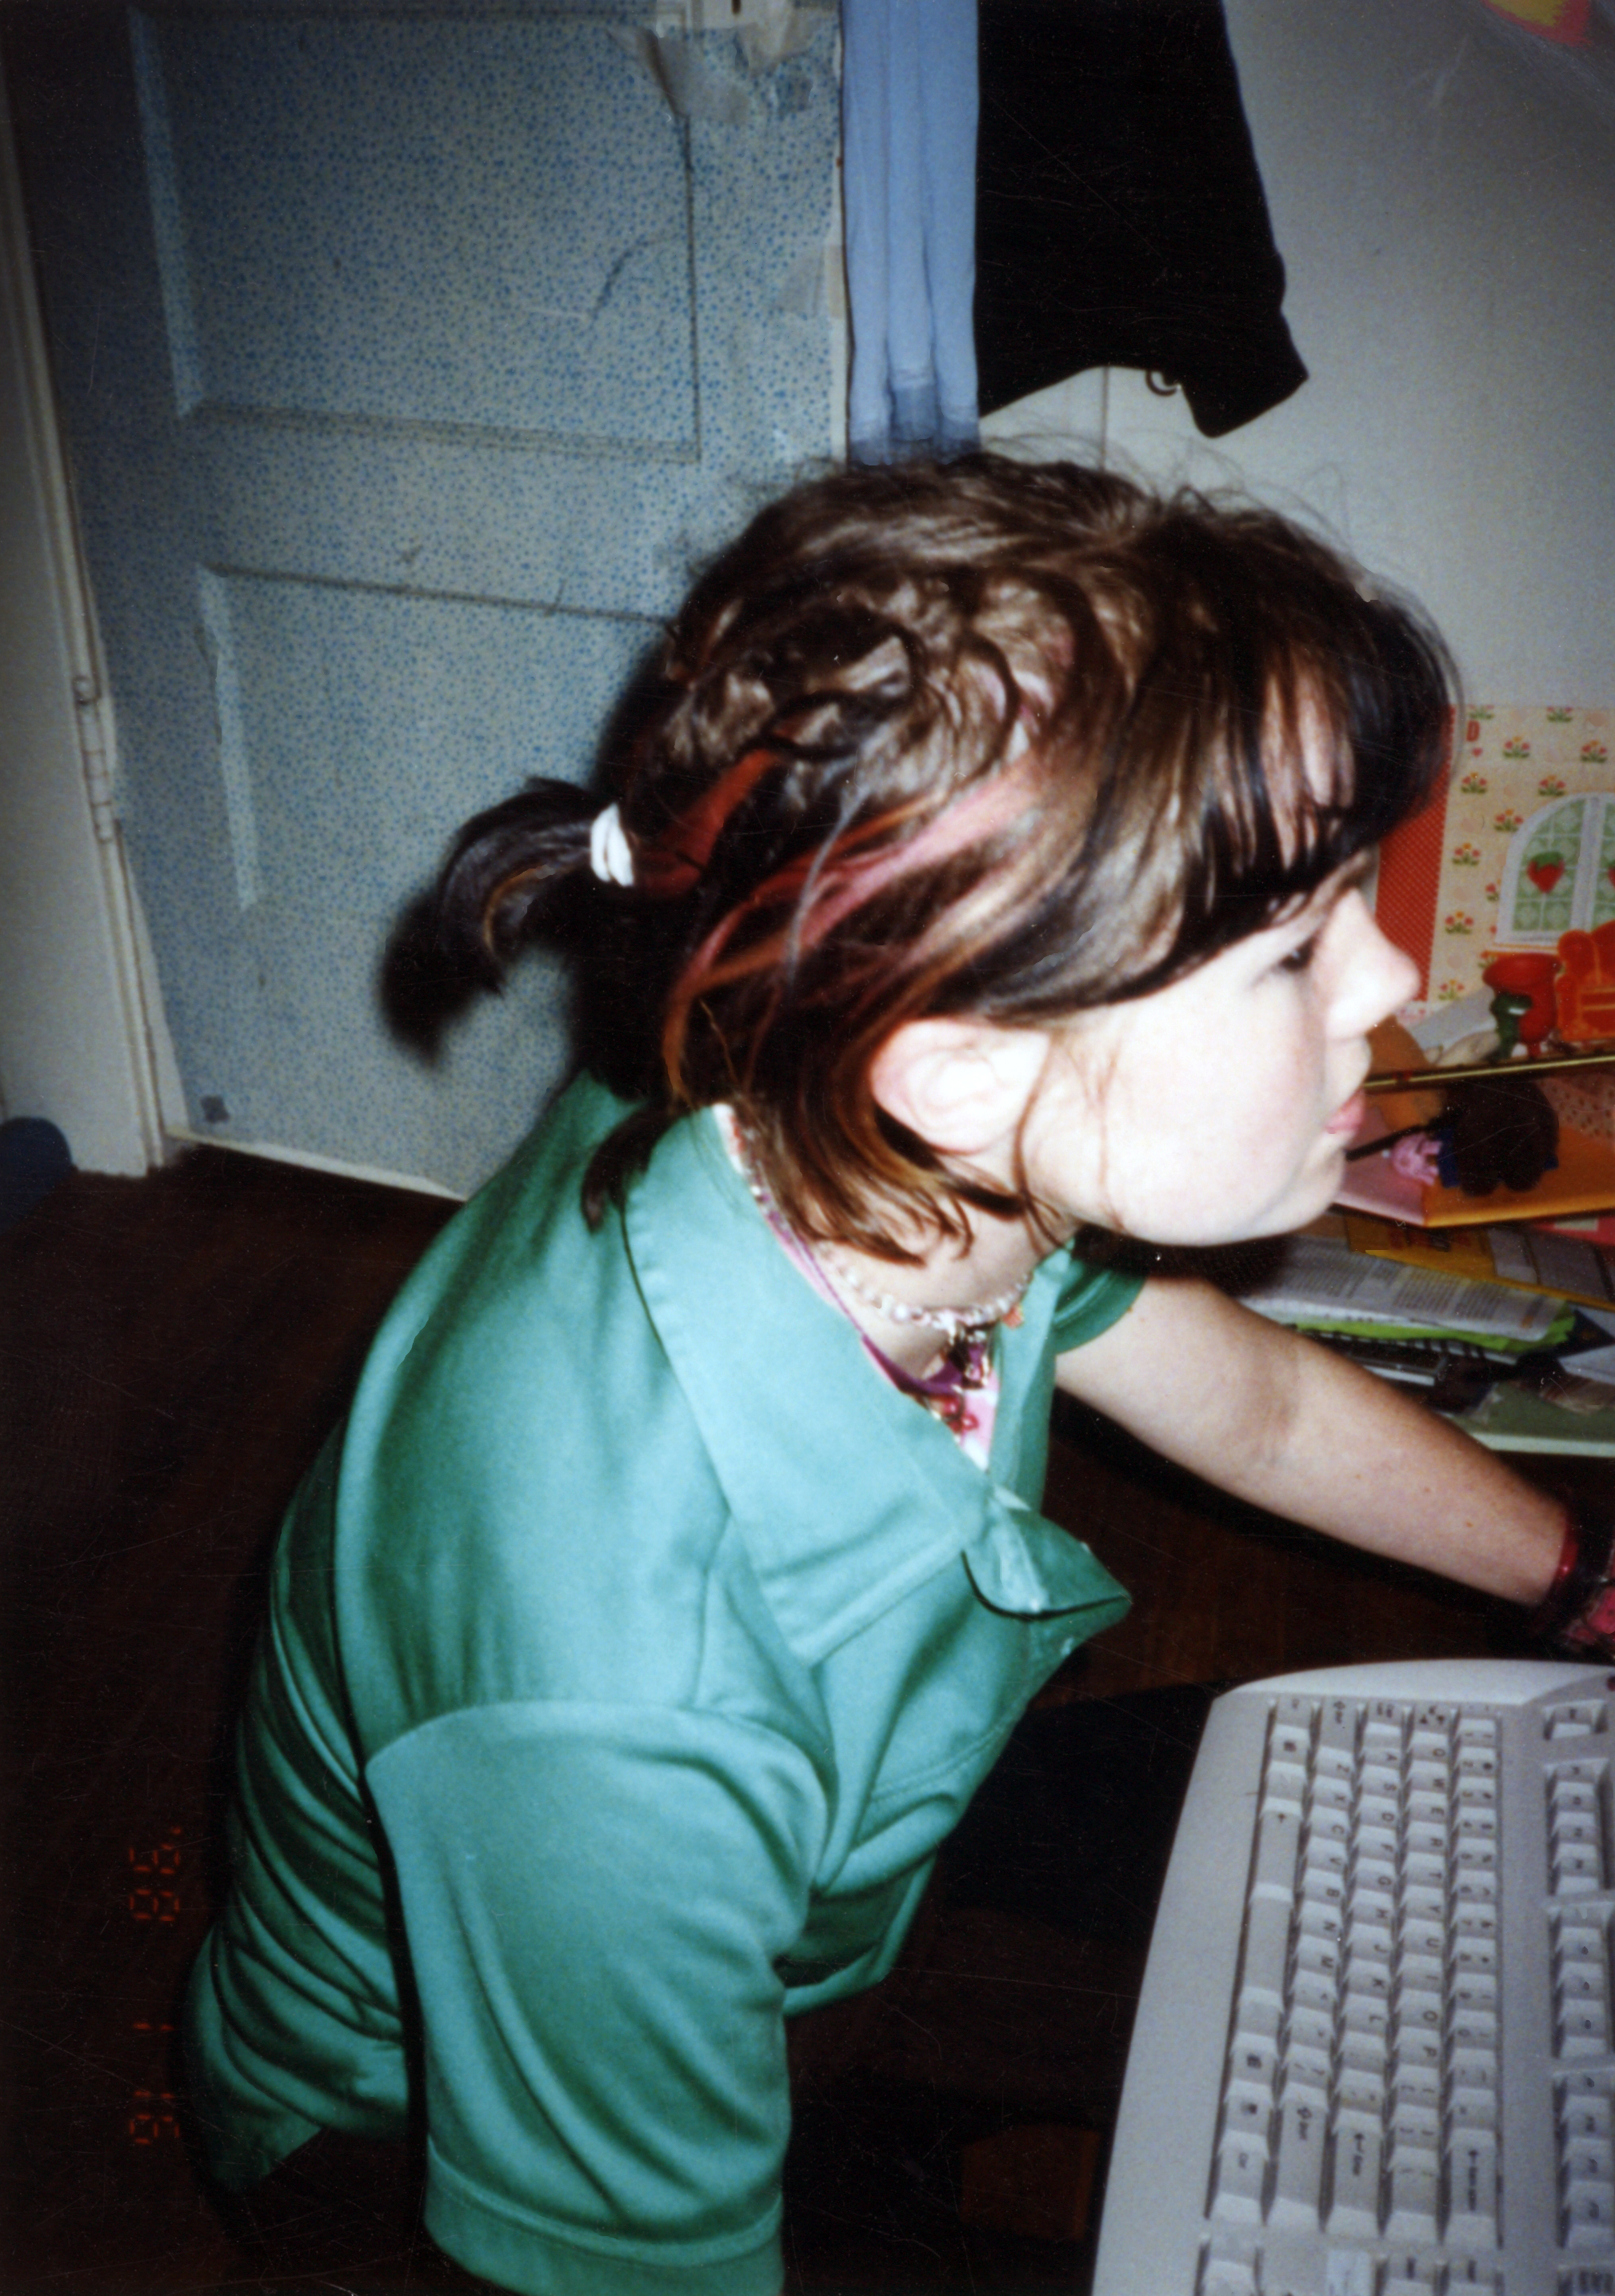 Chances are high I was on AOL, chatting with my friends, and asking them if they hated me.